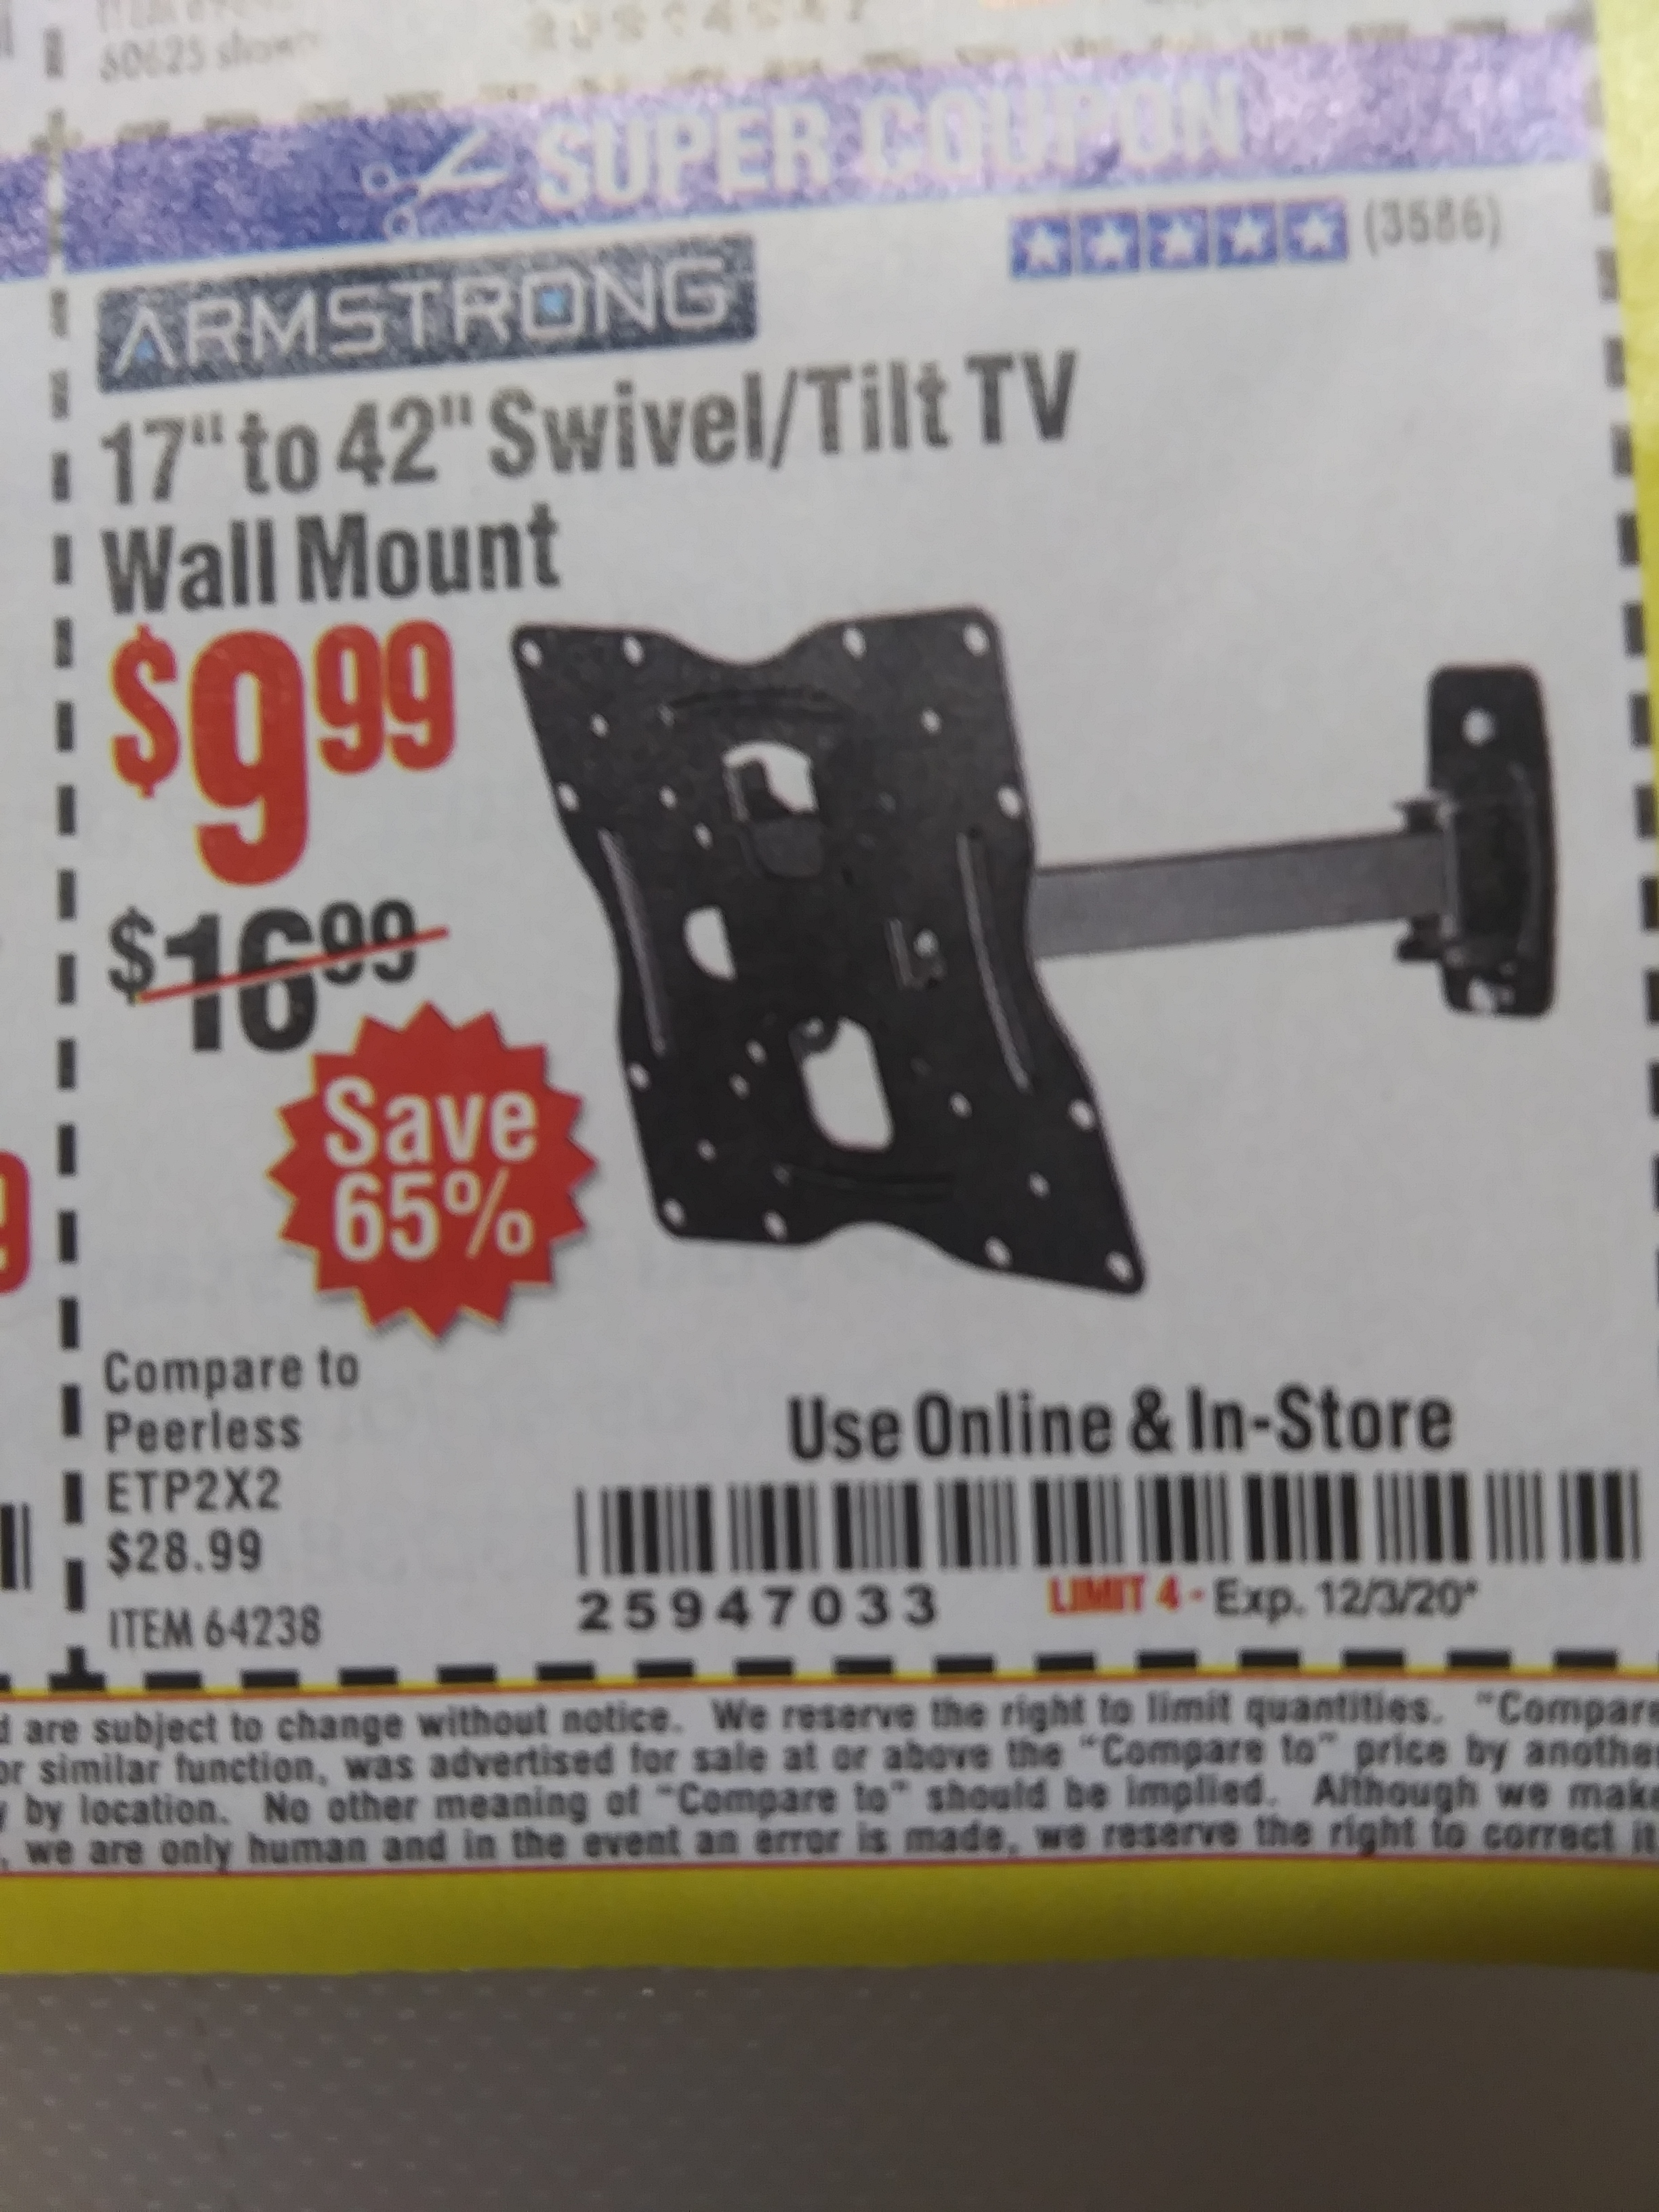 "www.hfqpdb.com - ARMSTRONG 17"" TO 42"" SWIVEL/TILT TV WALL MOUNT Lot No. 64238"